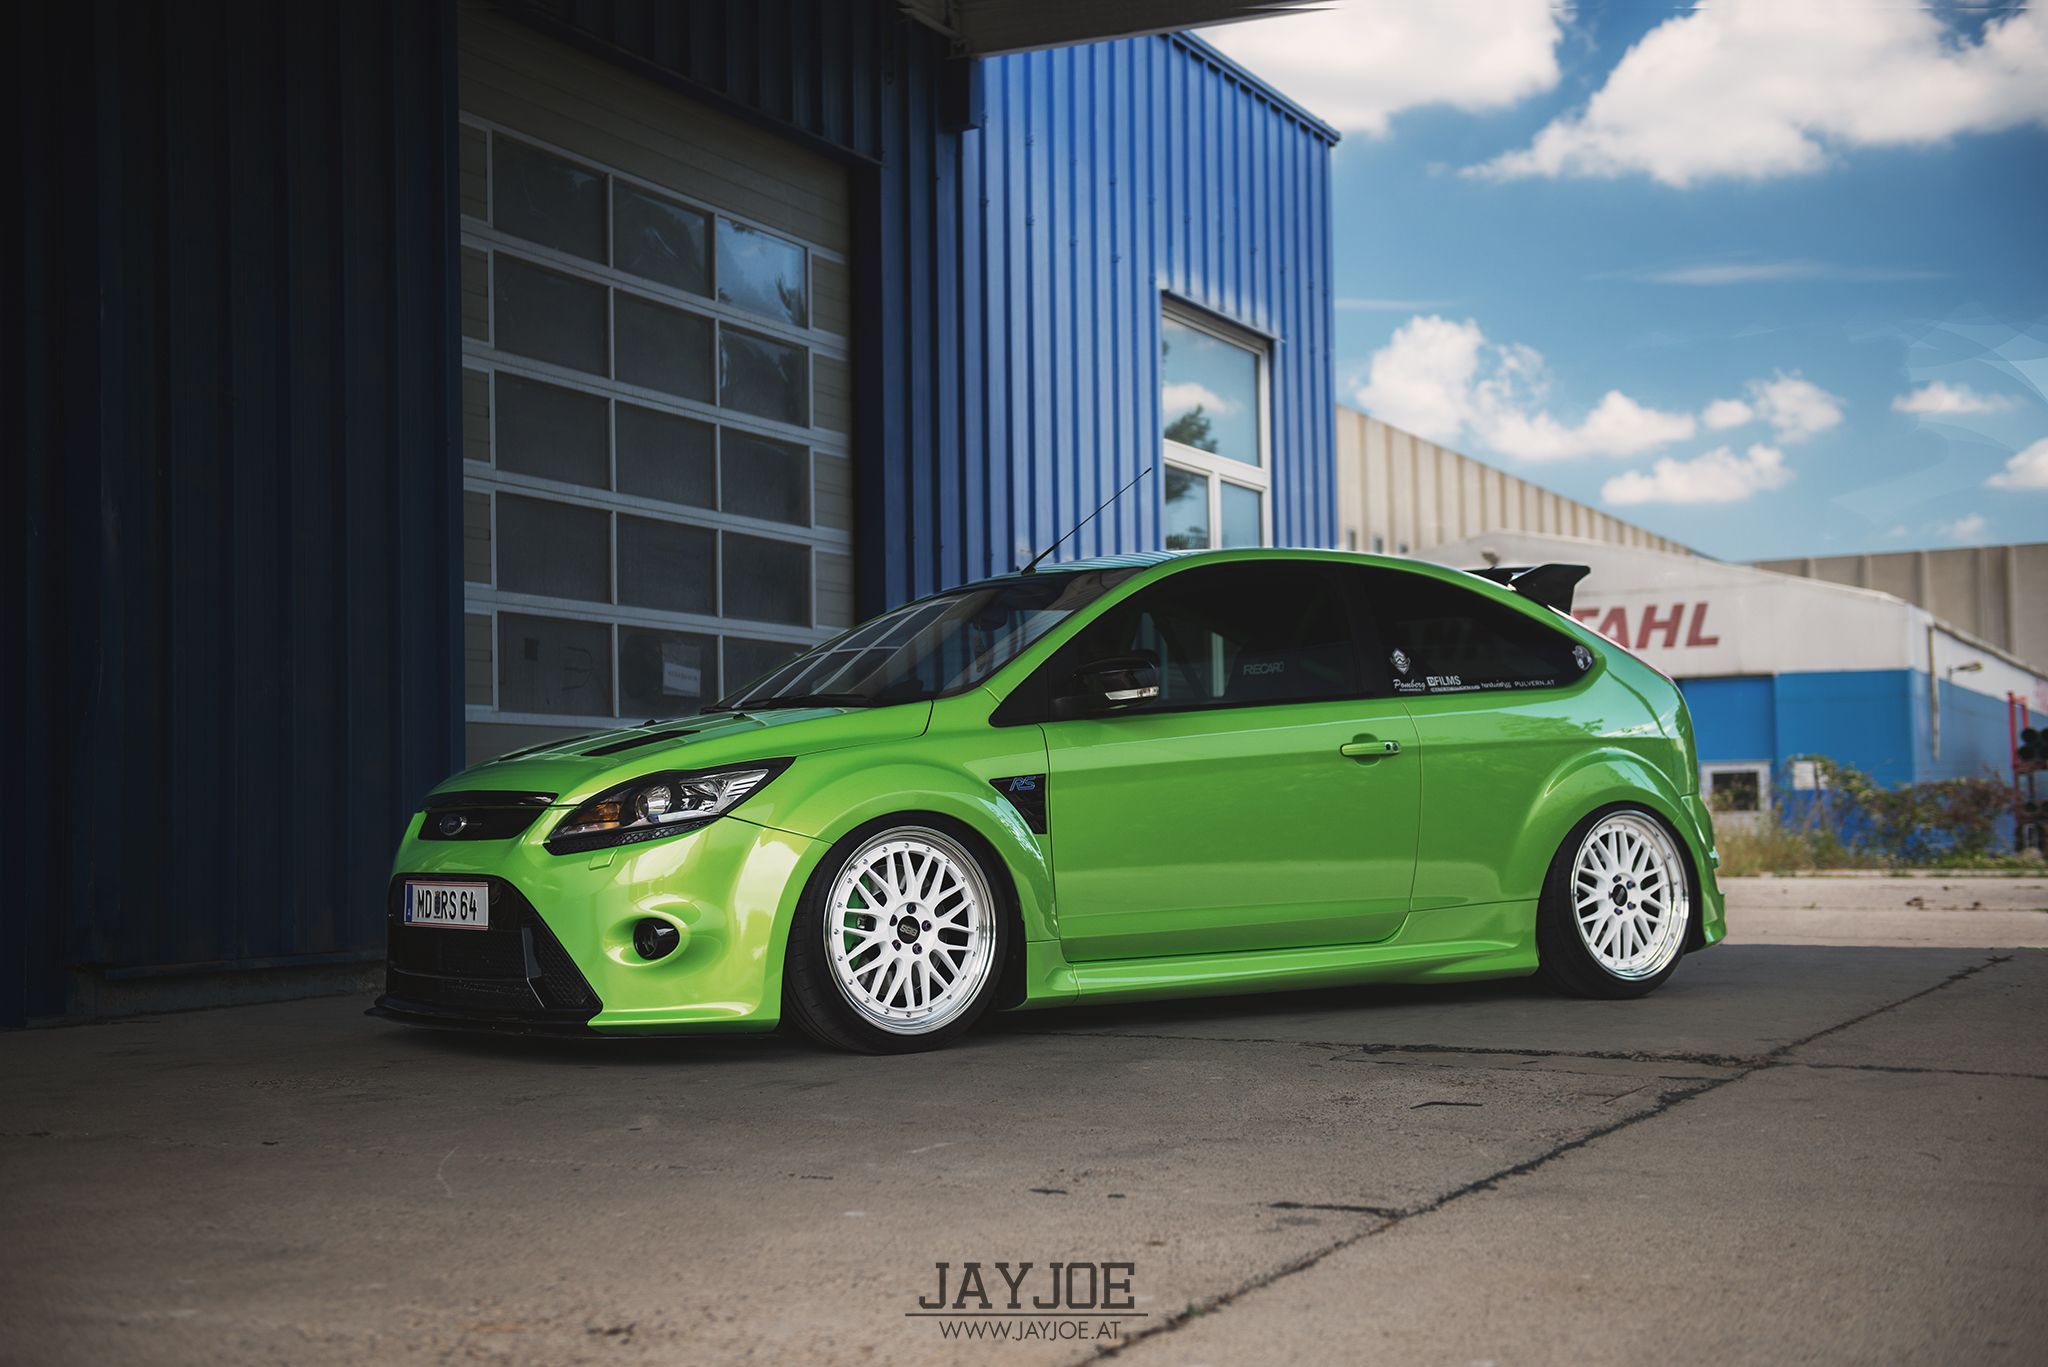 Ford focus rs mk2 www jayjoe at jayjoe pinterest focus rs ford focus and ford